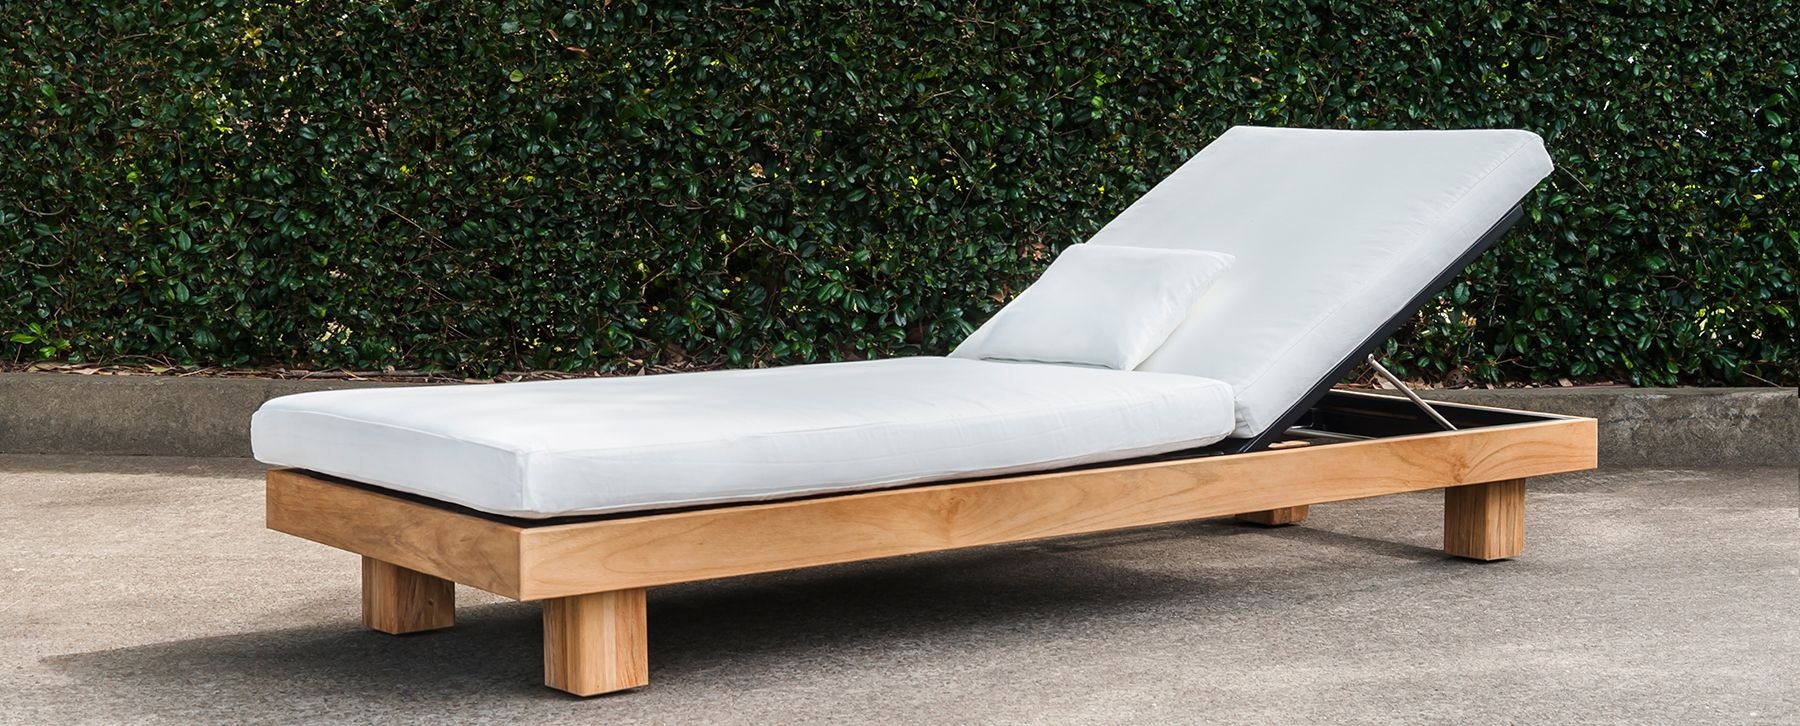 Alura Chaise Lounger Teak Stellar  Couture Outdoor